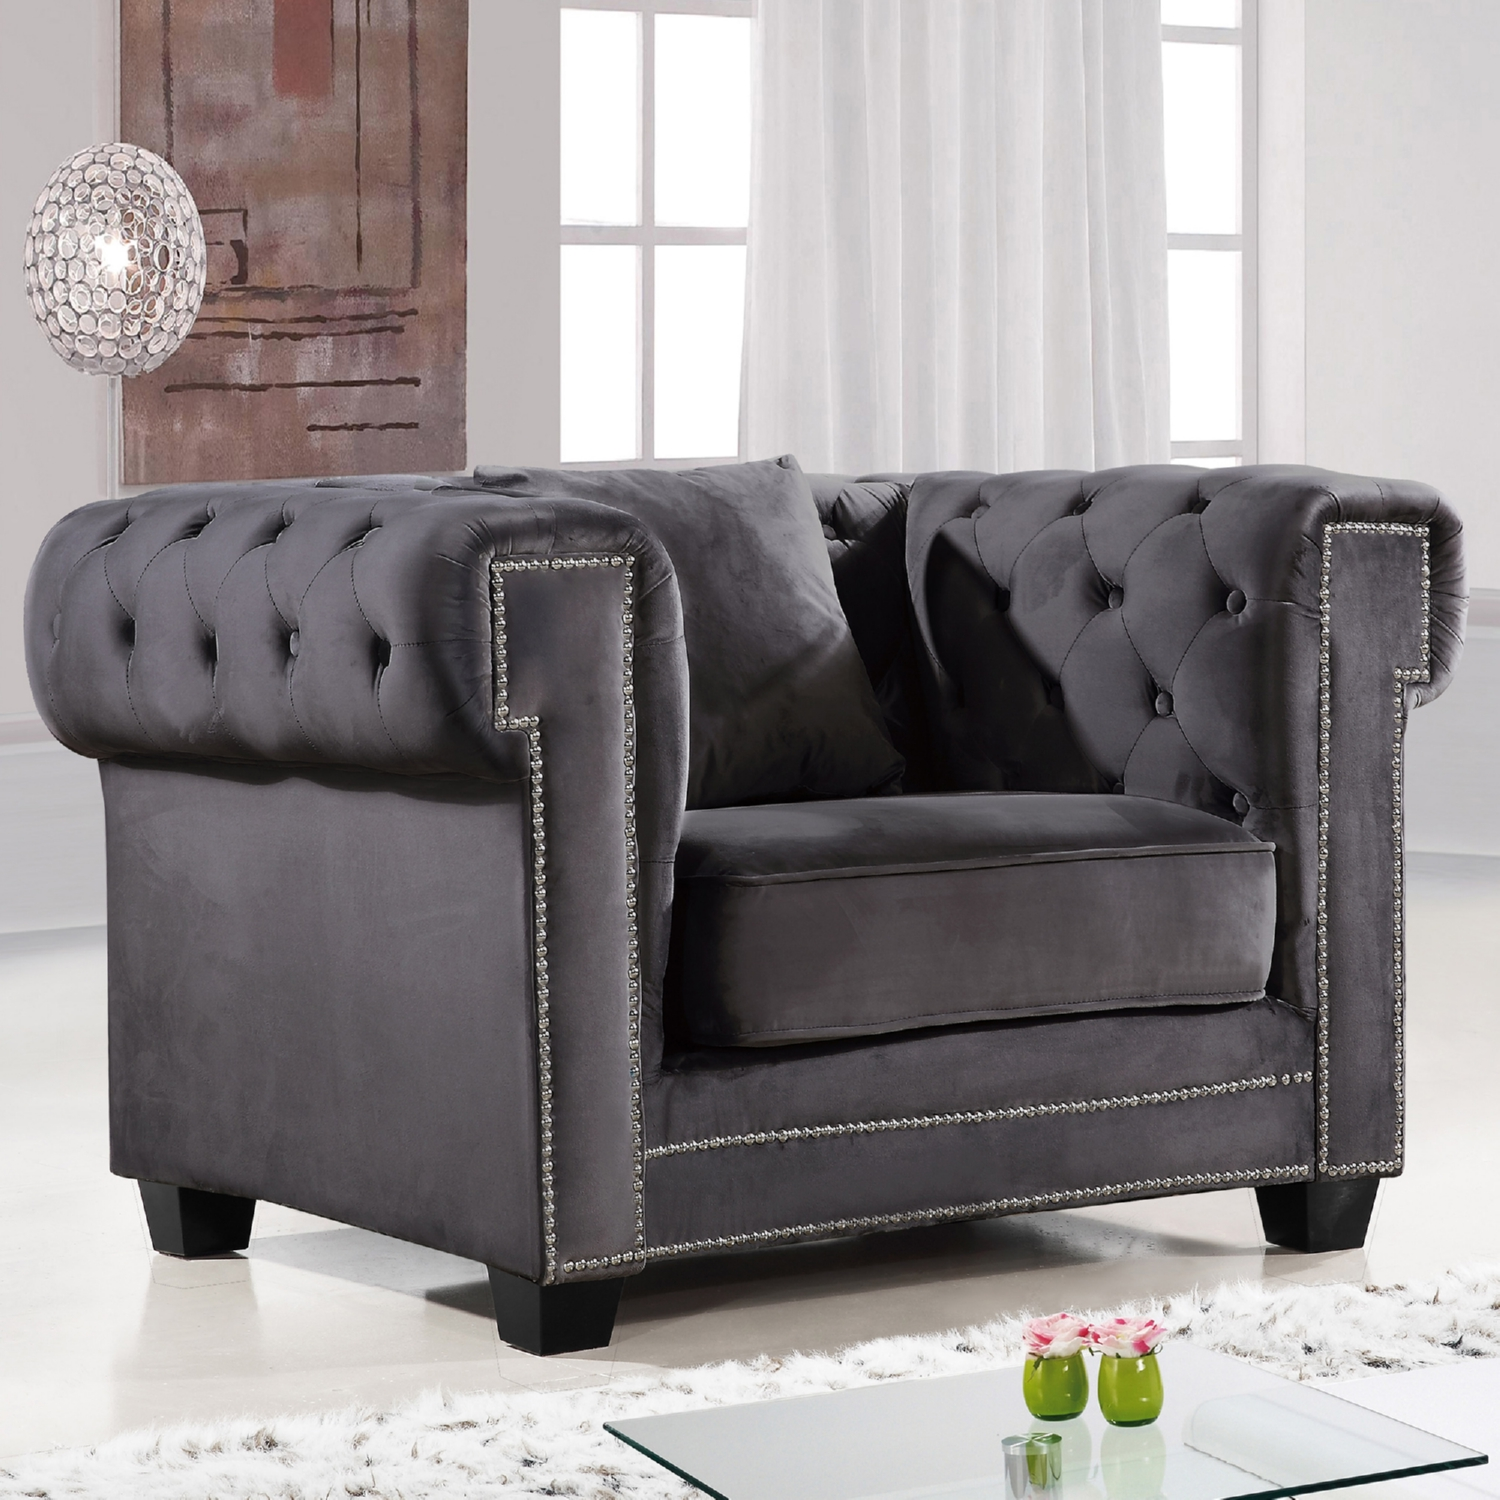 Meridian Furniture 614Grey C Bowery Grey Tufted Velvet Arm Chair w